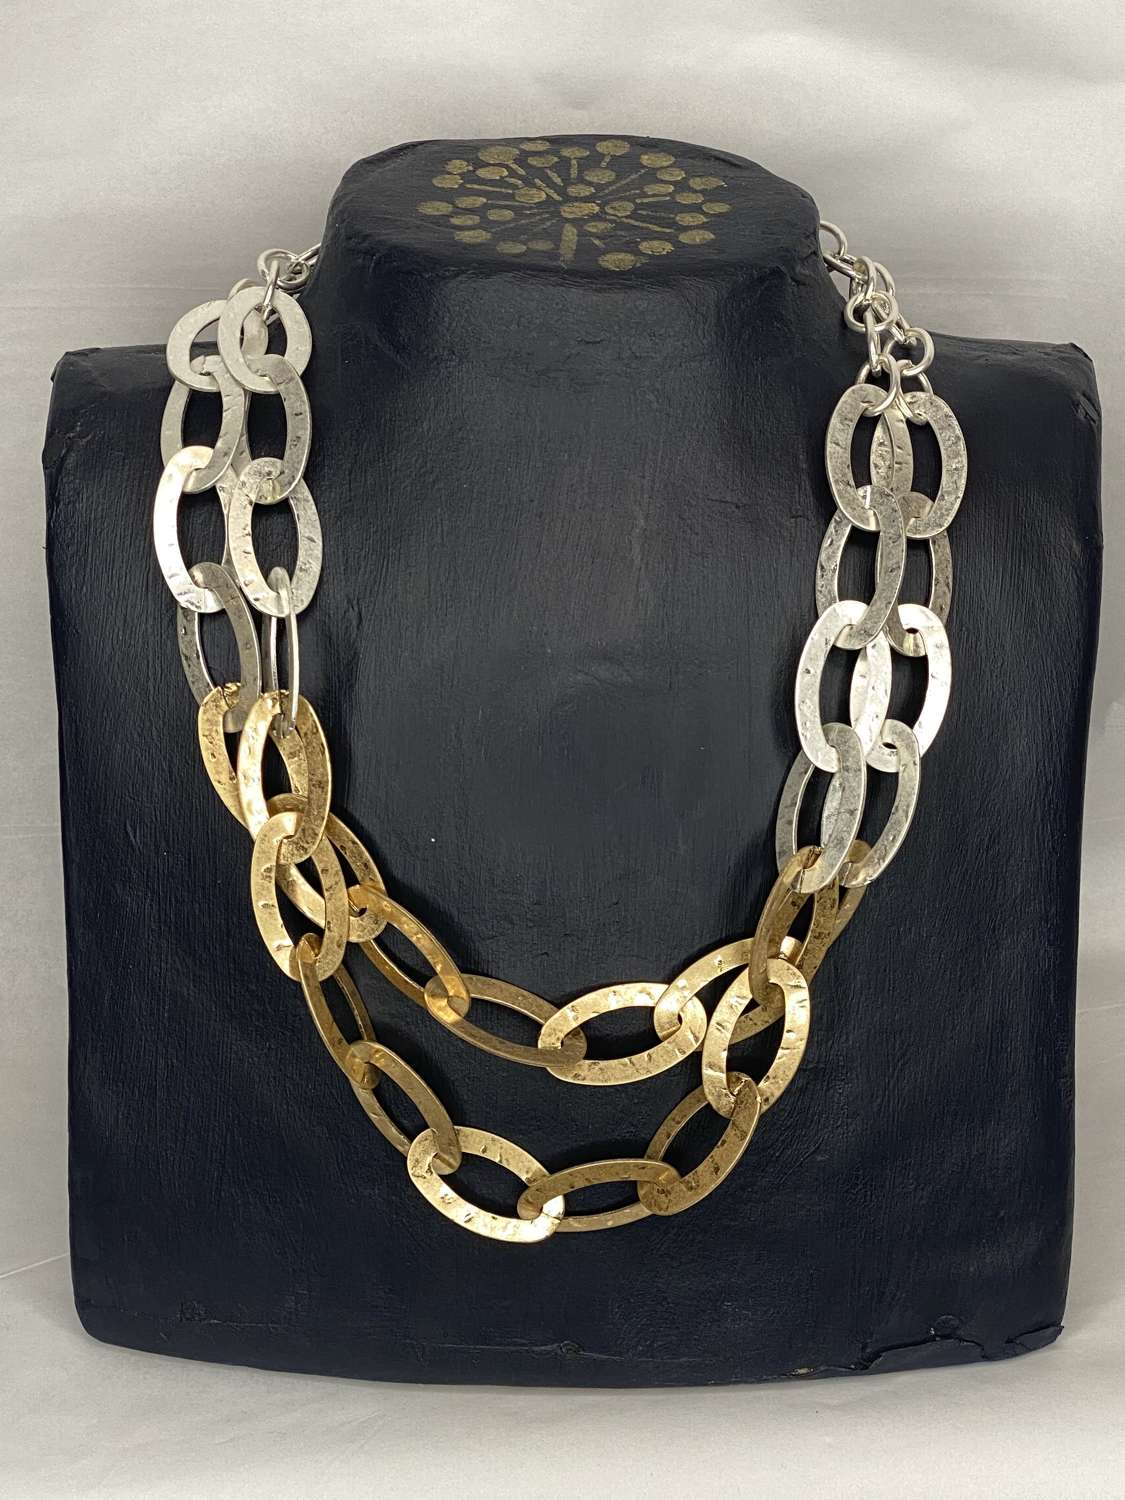 Envy Silver and gold chain necklace